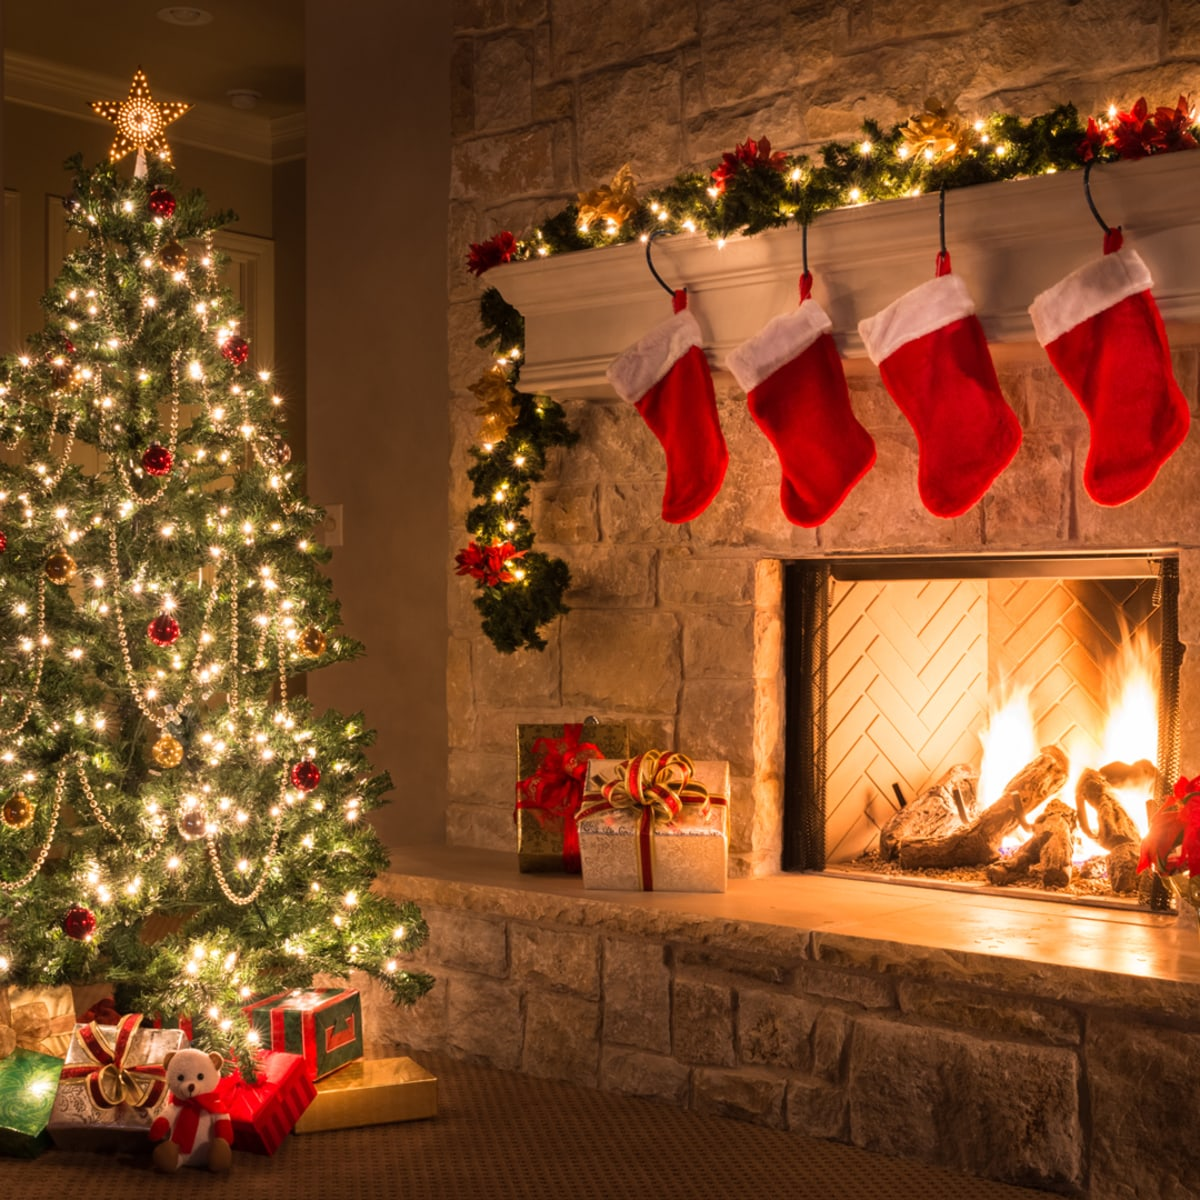 25 Christmas Traditions And Their Origins History